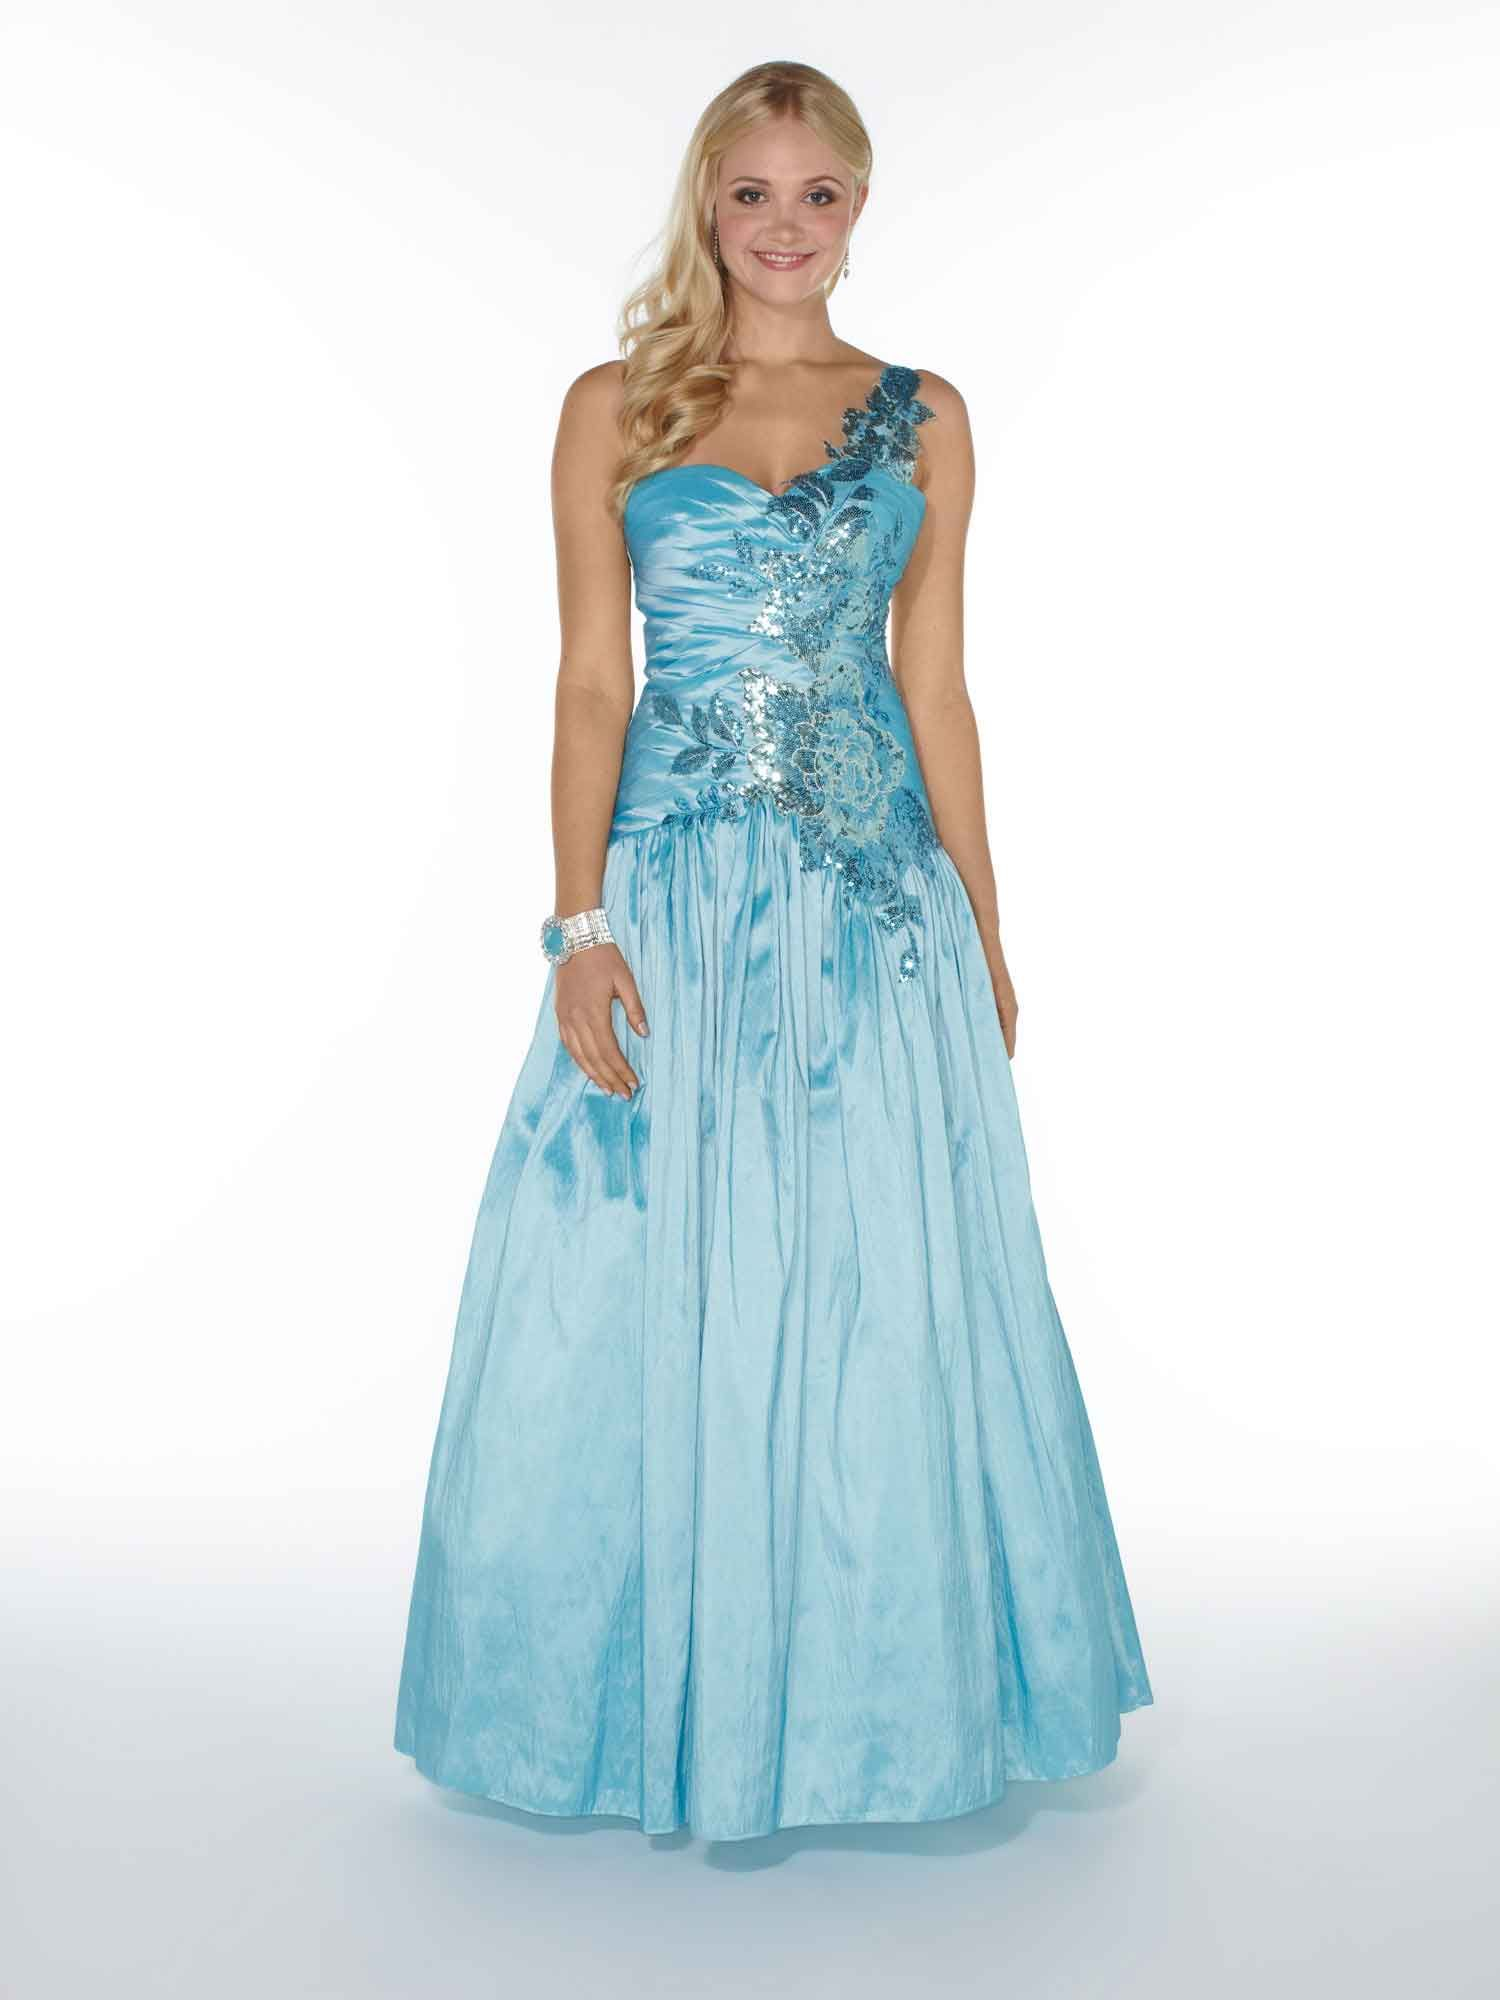 unique formal dresses for teens | ... ://www.beflirtydresses.com ...